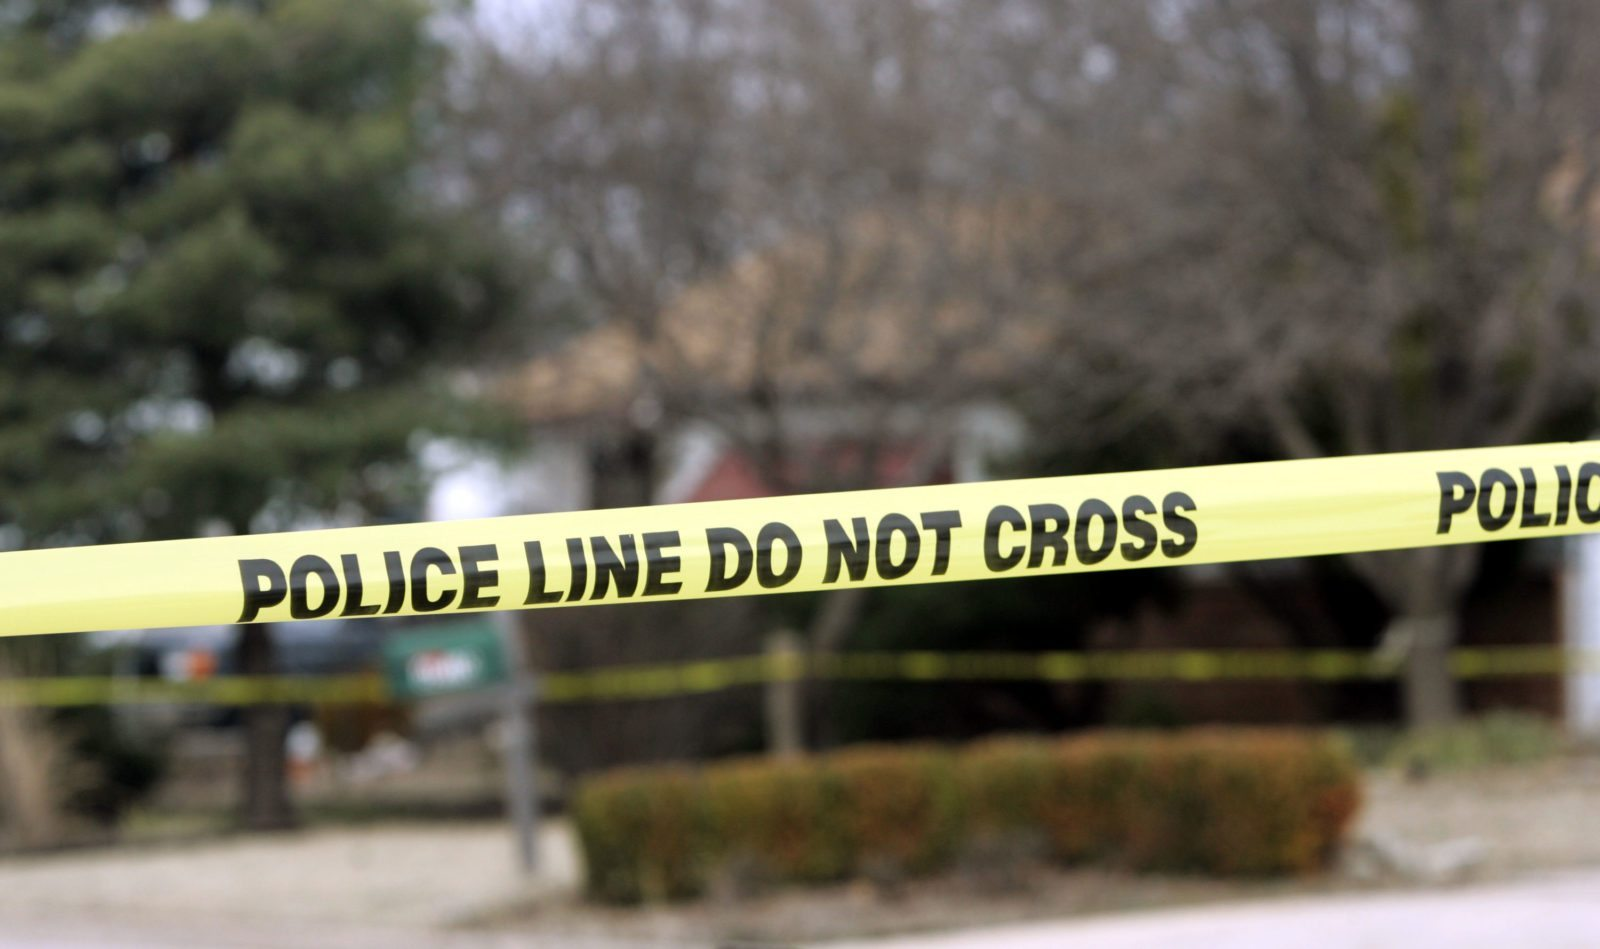 PARK CITY, KS - FEBRUARY 26: Police tape hangs across the street in front of the house that Dennis Rader lives in February 26, 2005 in Park City, Kansas. Rader is the suspect whom police have arrested on suspicion of first-degree murder in connection with the 10 deaths now tied to the serial killer known as BTK. (Photo by Larry W. Smith/Getty Images)PARK CITY, KS - FEBRUARY 26: Police tape hangs across the street in front of the house that Dennis Rader lives in February 26, 2005 in Park City, Kansas. Rader is the suspect whom police have arrested on suspicion of first-degree murder in connection with the 10 deaths now tied to the serial killer known as BTK. (Photo by Larry W. Smith/Getty Images)